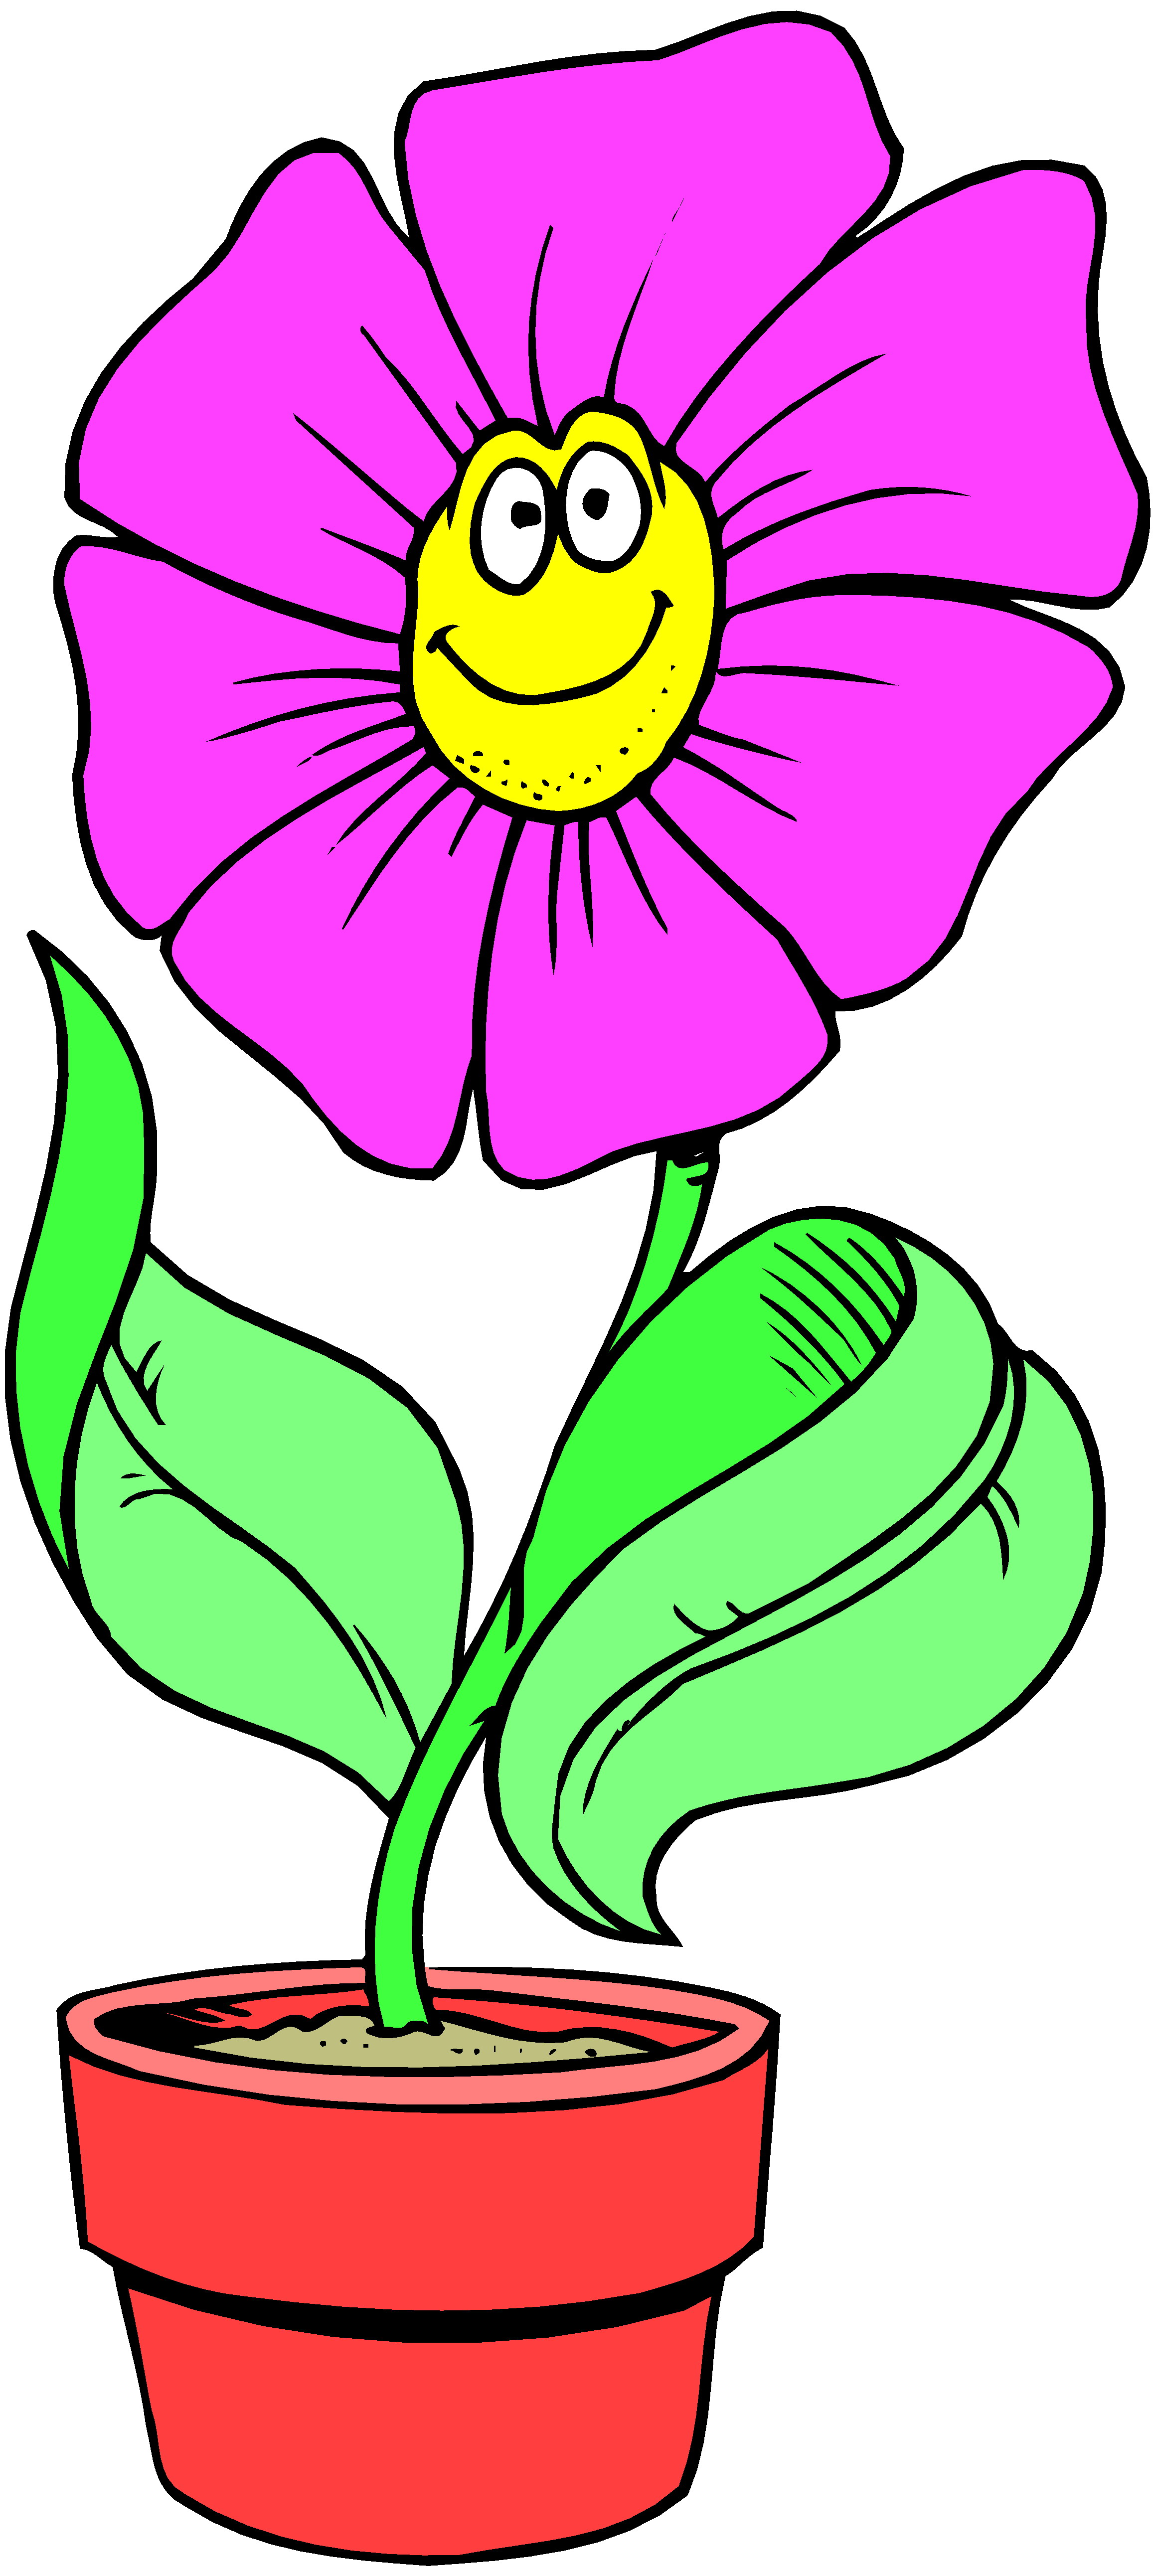 Blume clipart #5, Download drawings